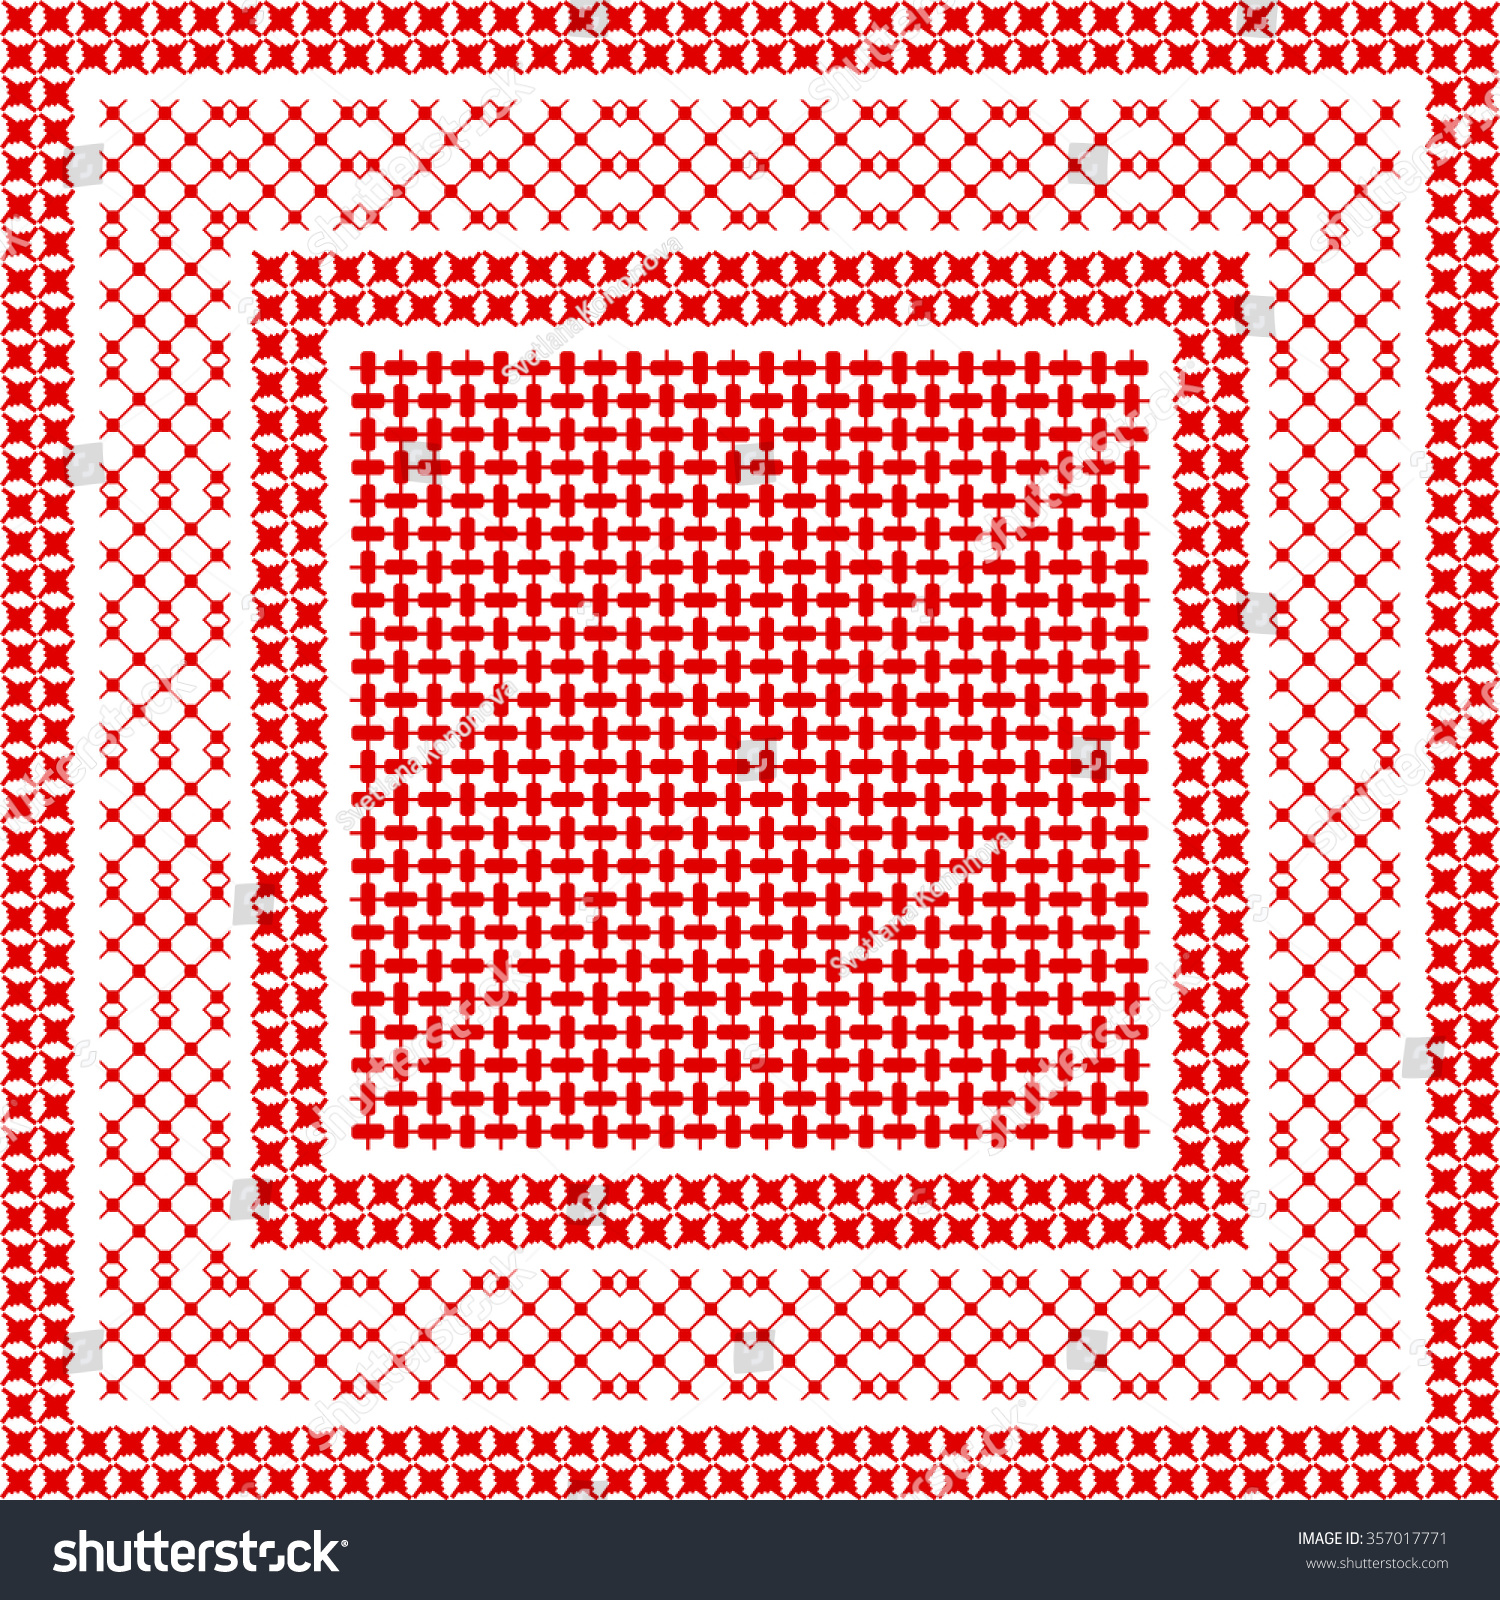 houndstooth wallpaper red